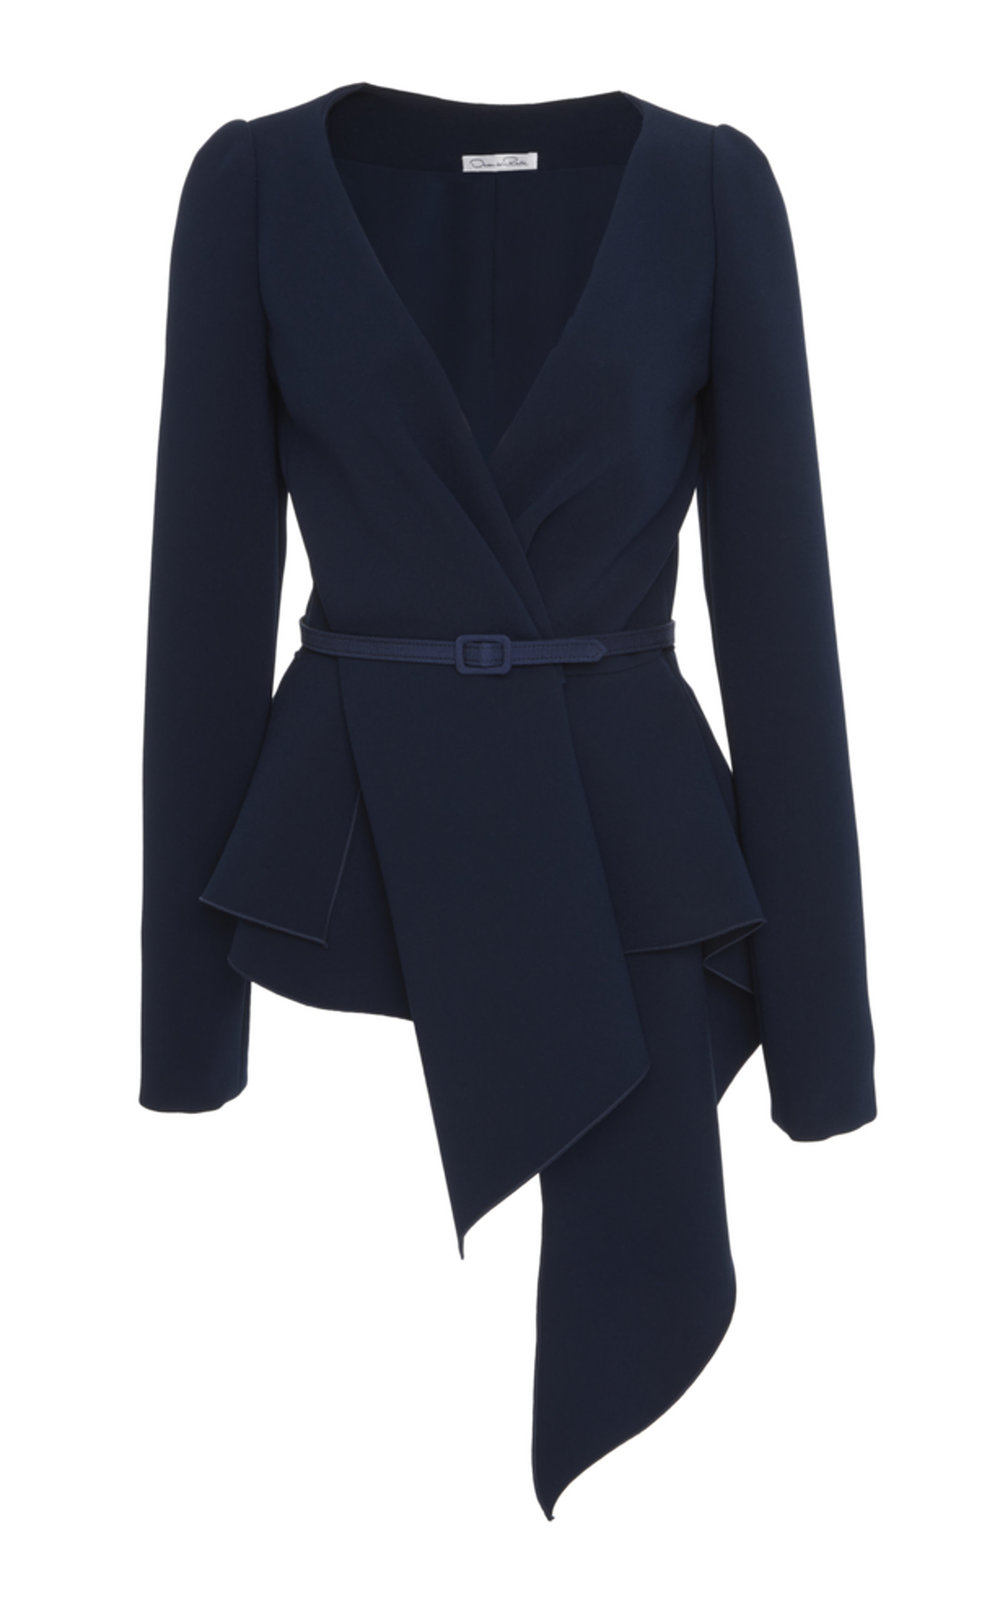 large_oscar-de-la-renta-navy-draped-blouse.jpg